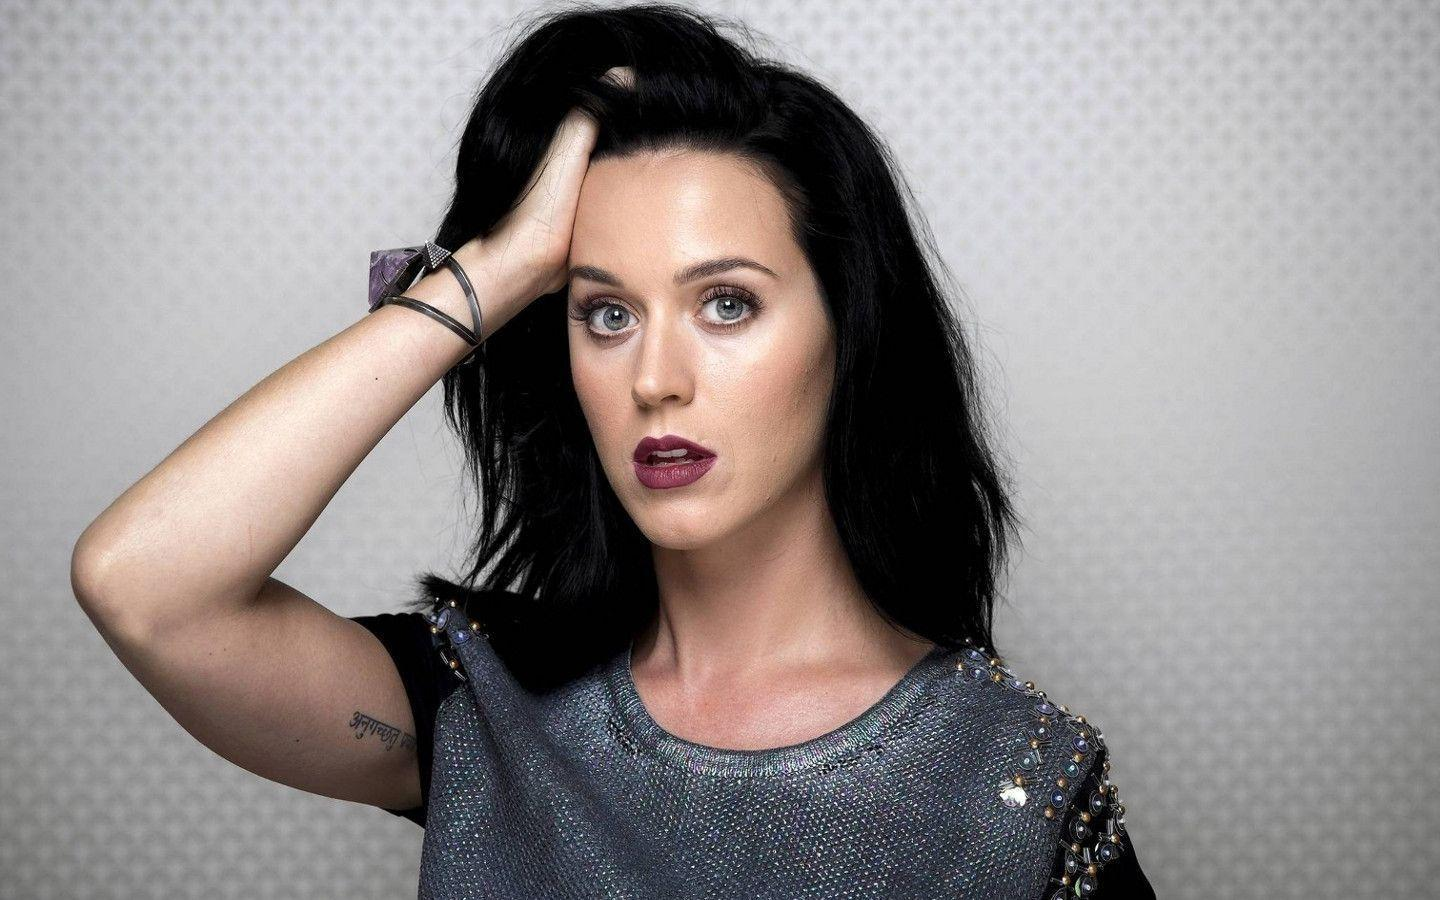 Katy Perry Wallpaper Prism 2466